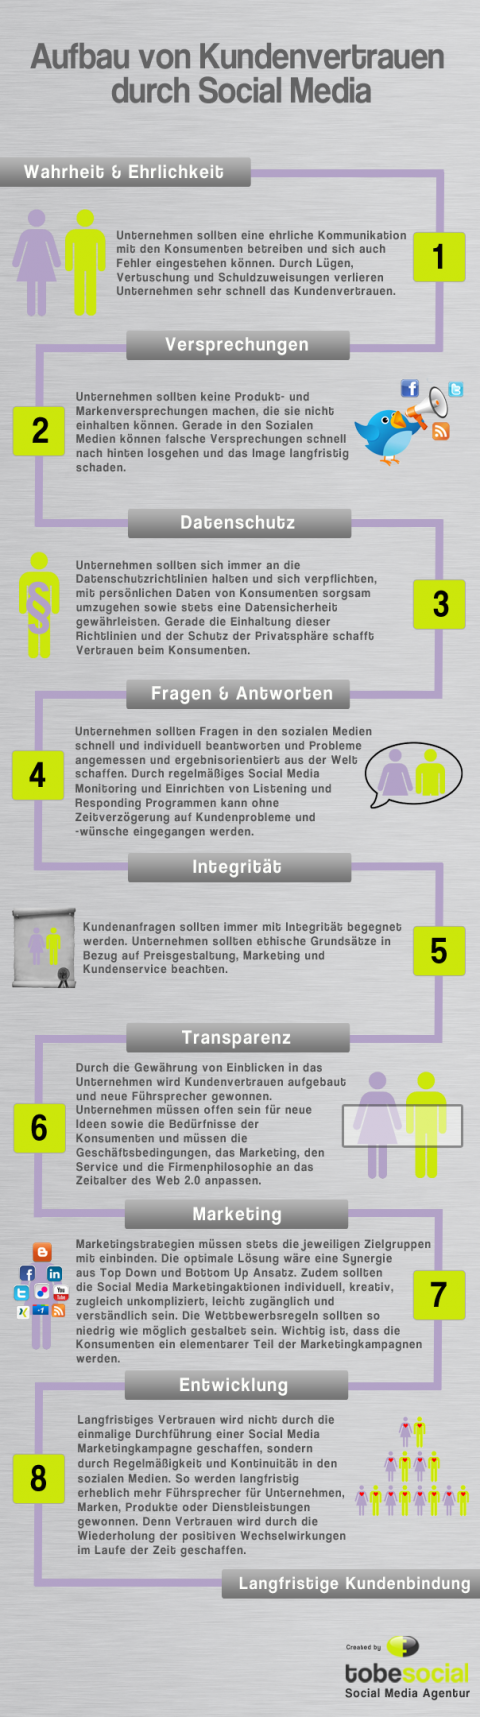 tobesocial-kundenbindung-kundengewinnung-social-media-marketing_0